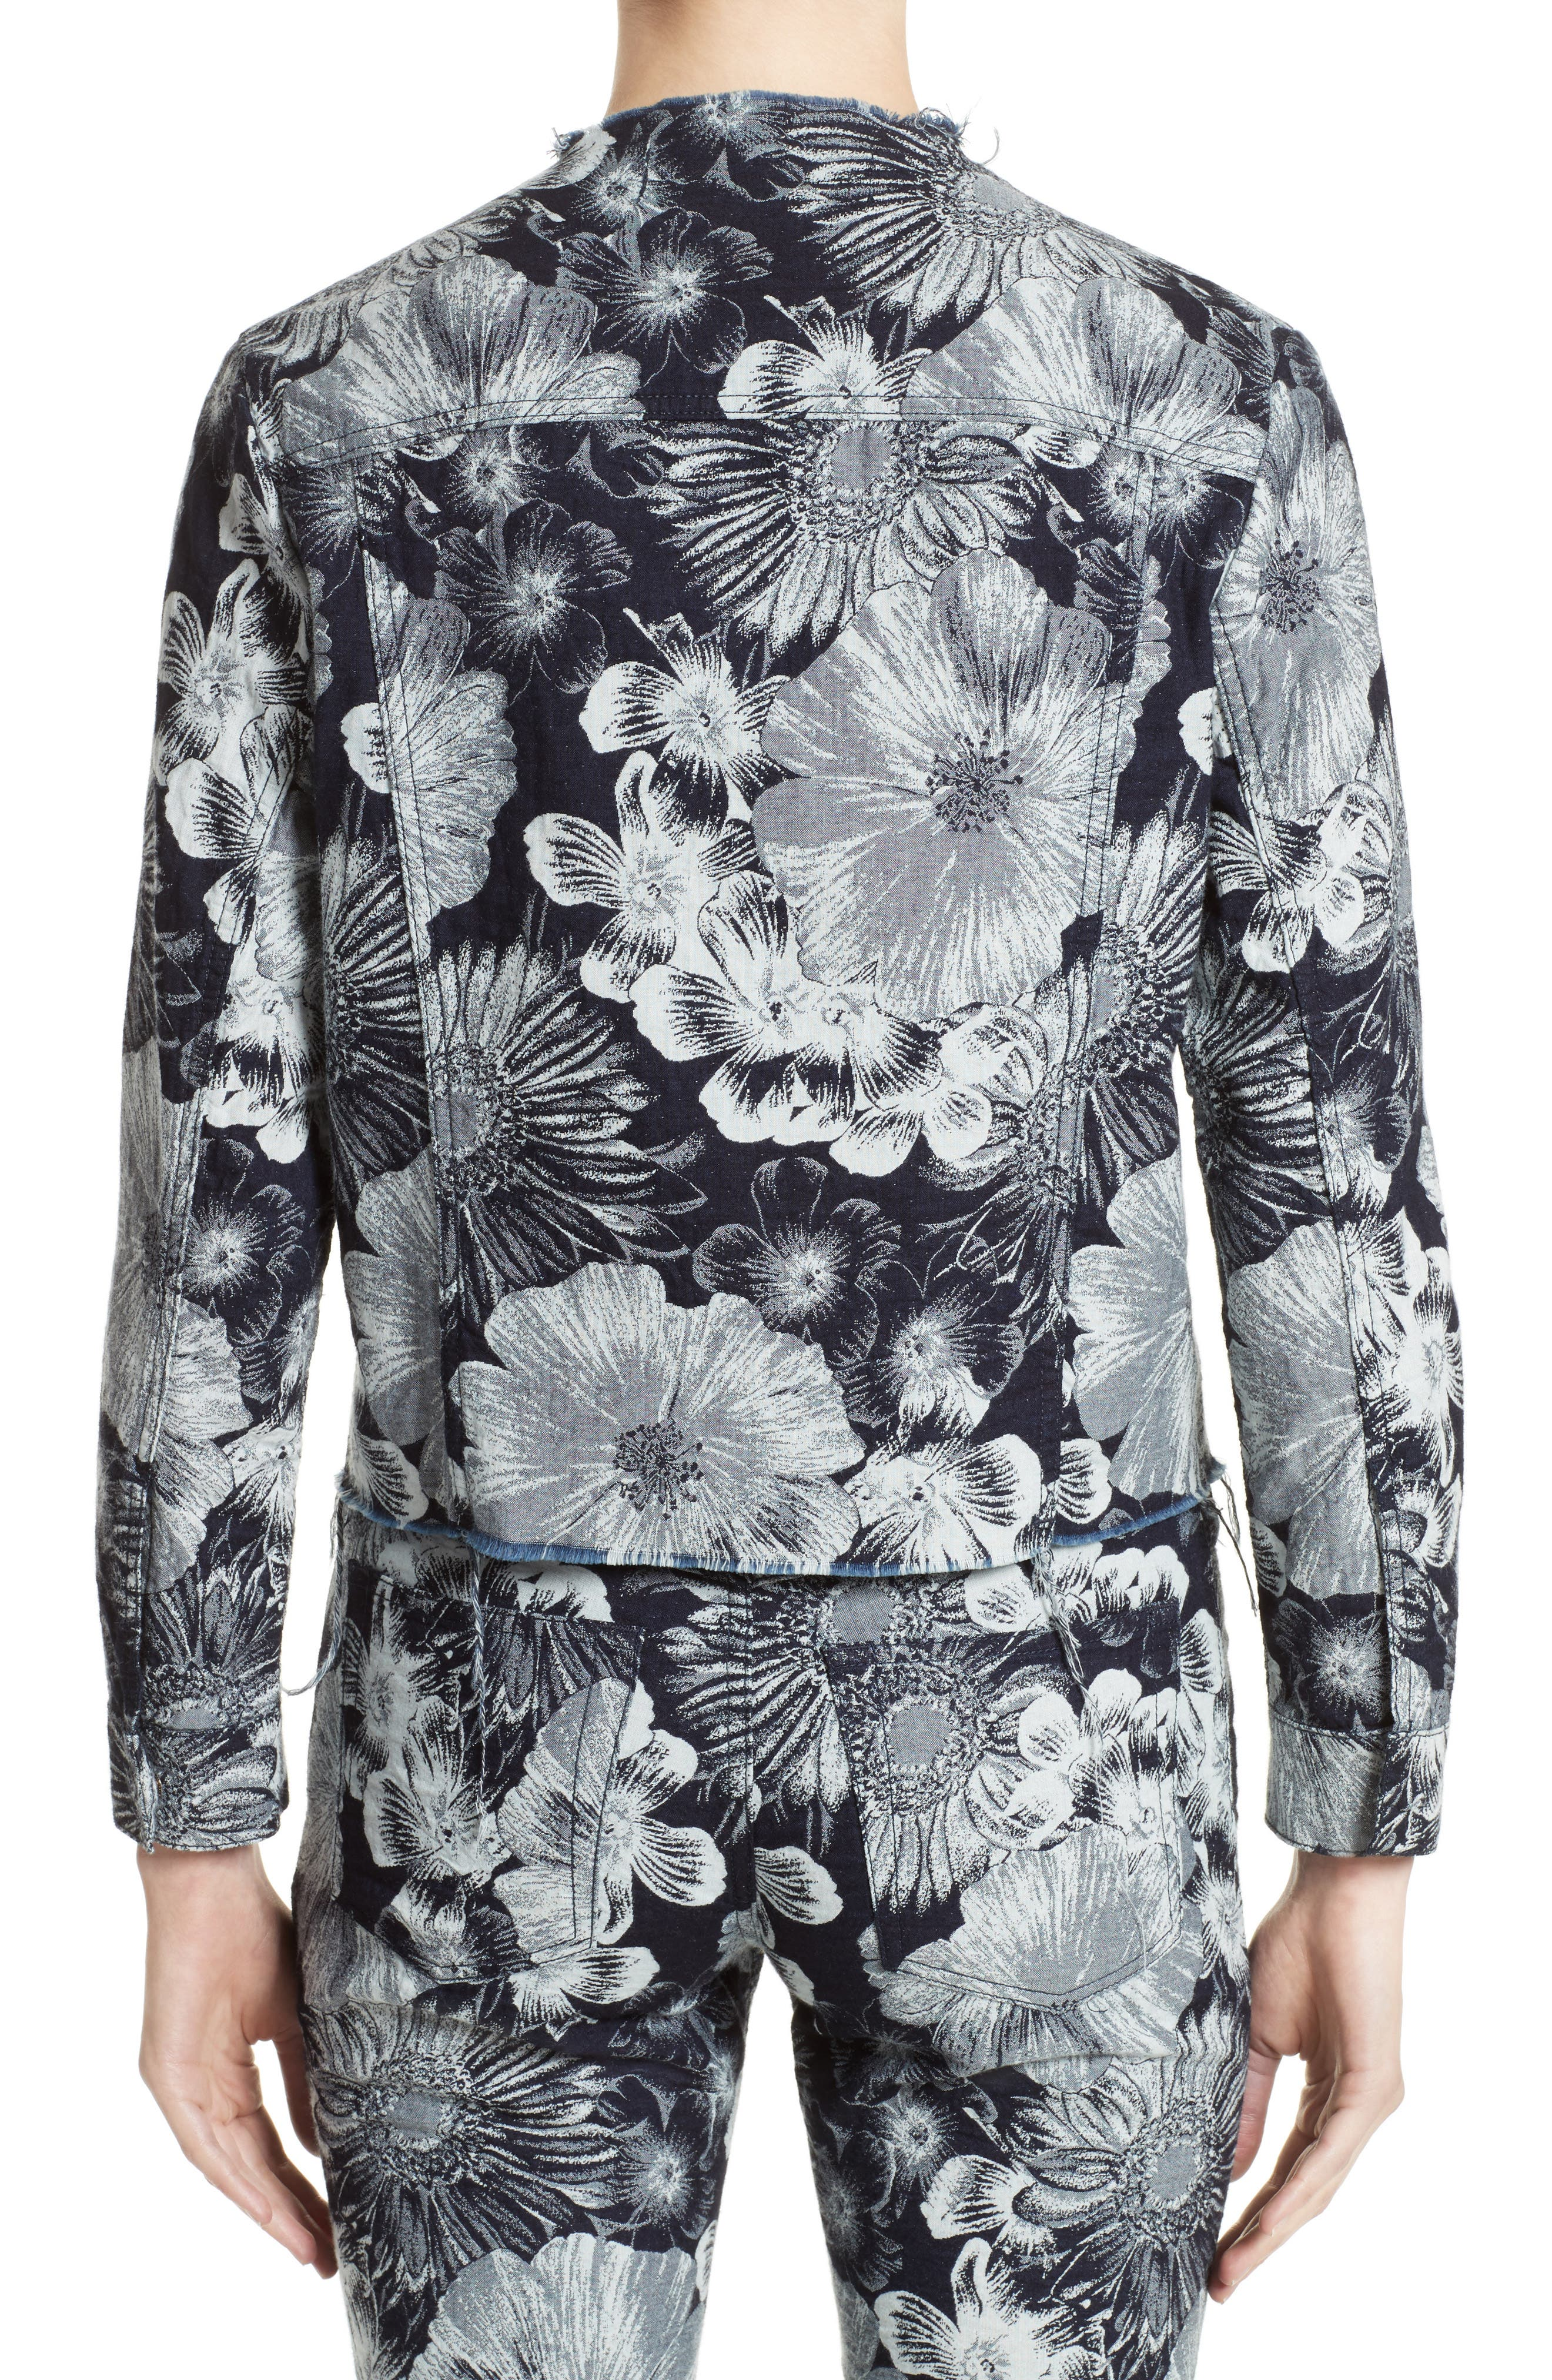 Marques'Almeida Floral Print Classic Fitted Denim Jacket,                             Alternate thumbnail 3, color,